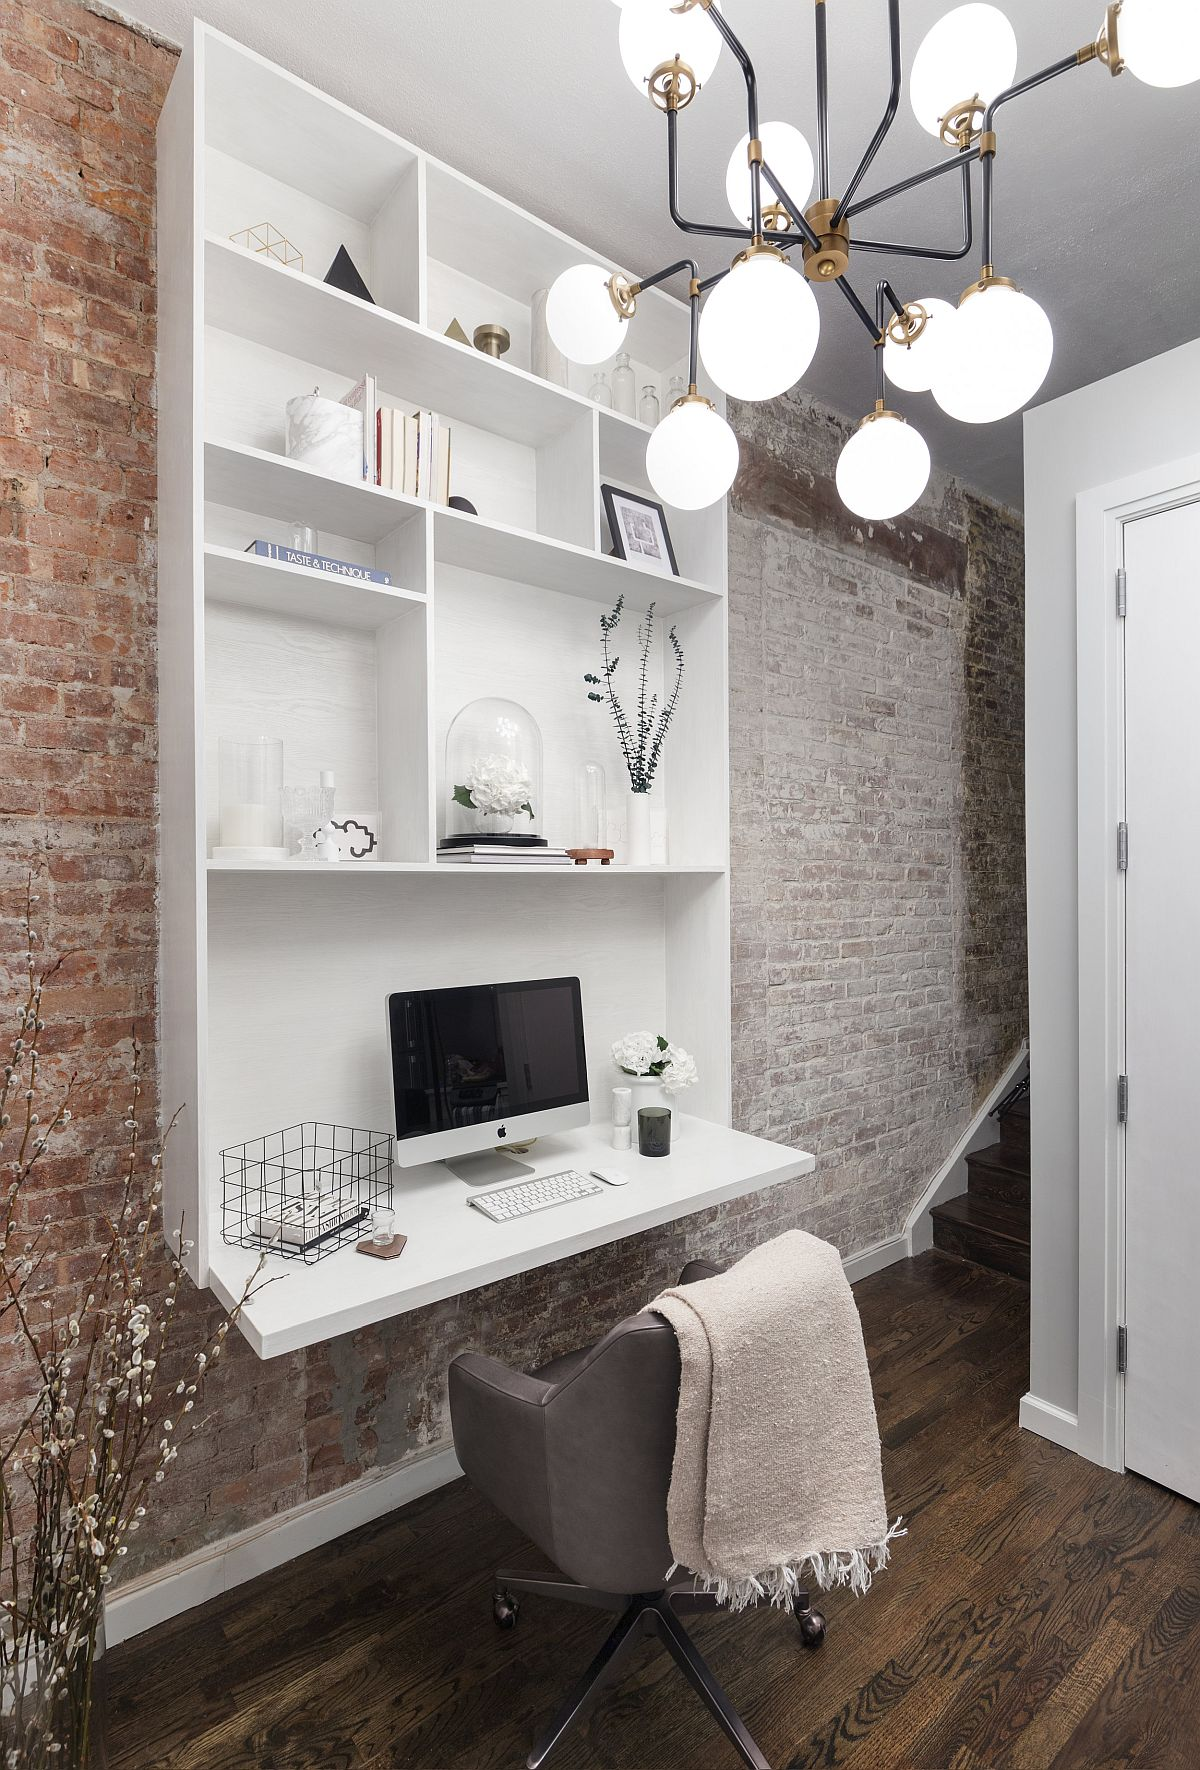 Lovely-chandelier-and-brick-walls-give-unique-appeal-to-this-small-home-workspace-in-the-hallway-93141